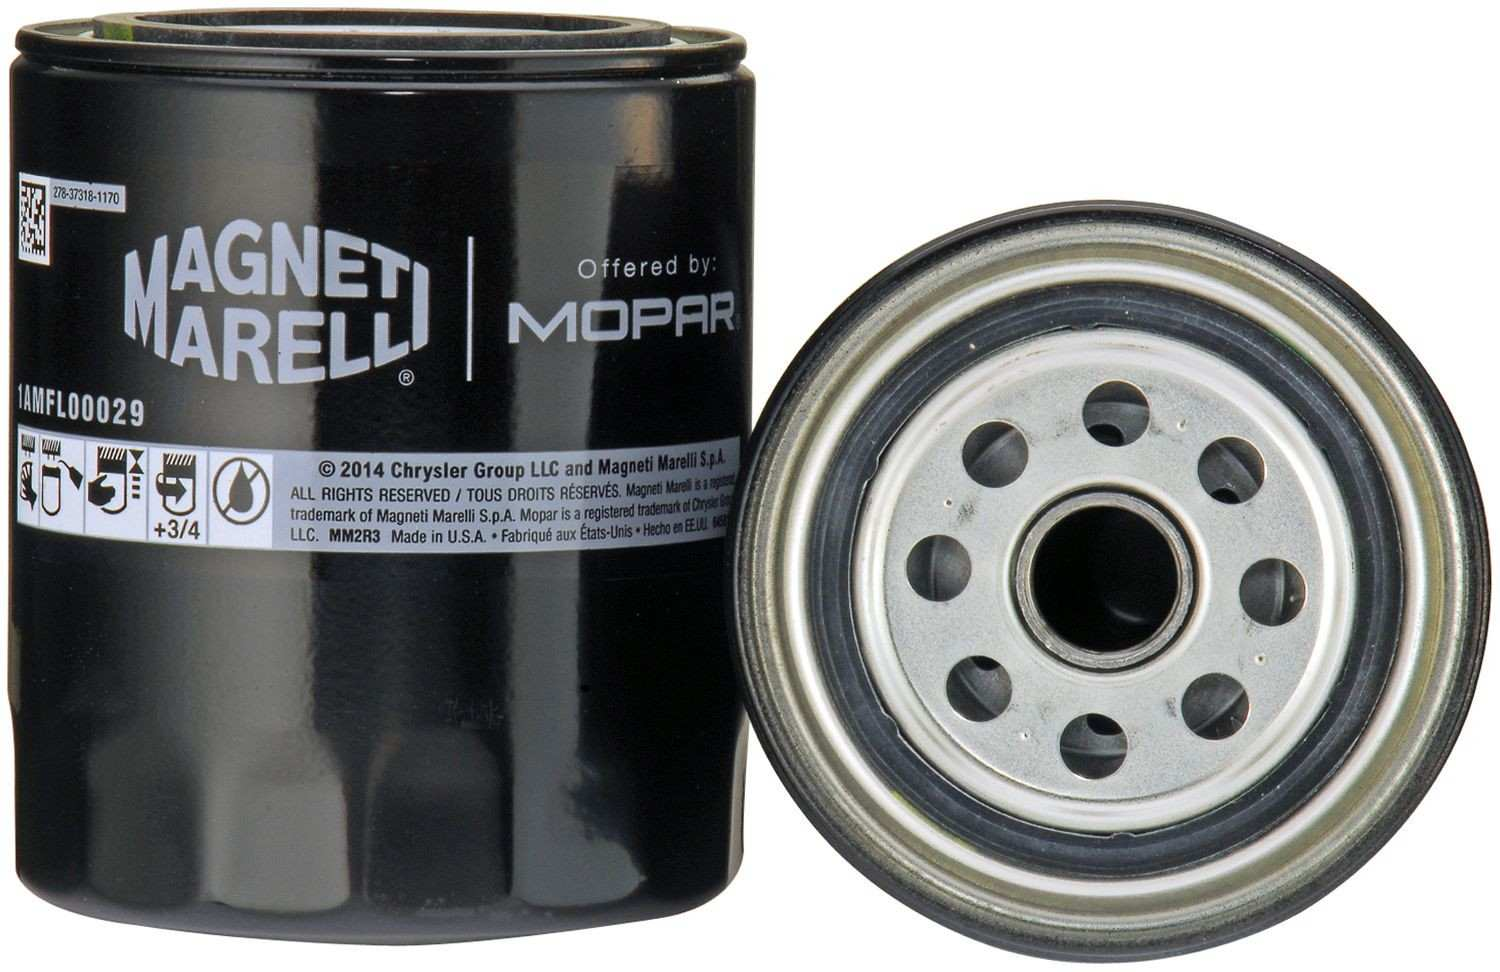 MAGNETI MARELLI OFFERED BY MOPAR - Engine Oil Filter - MGM 1AMFL00029